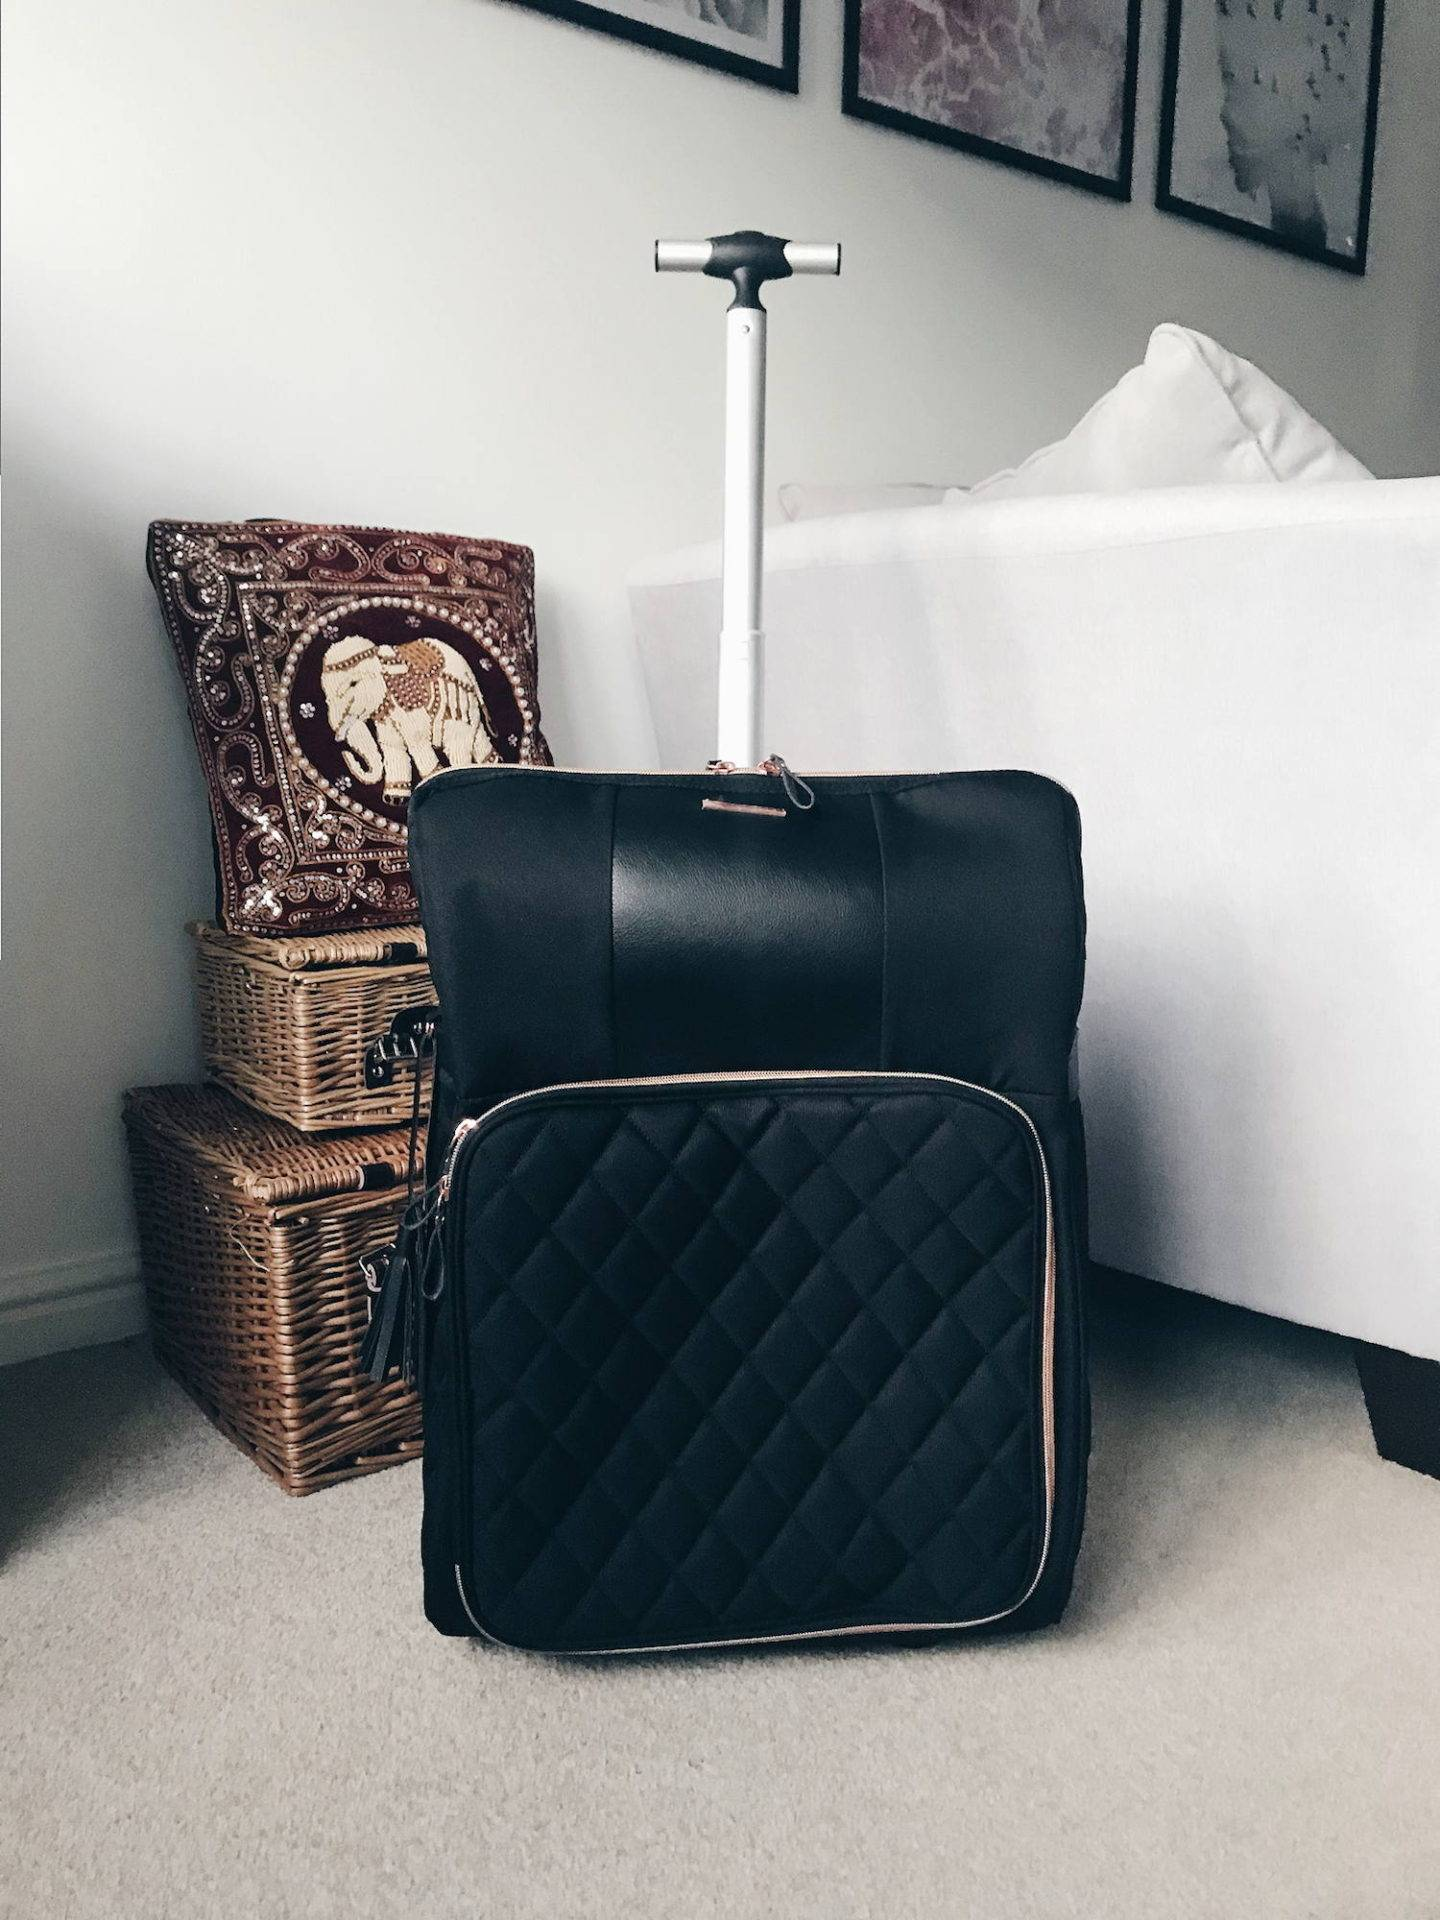 Most fashionable ladies cabin case for plane travel